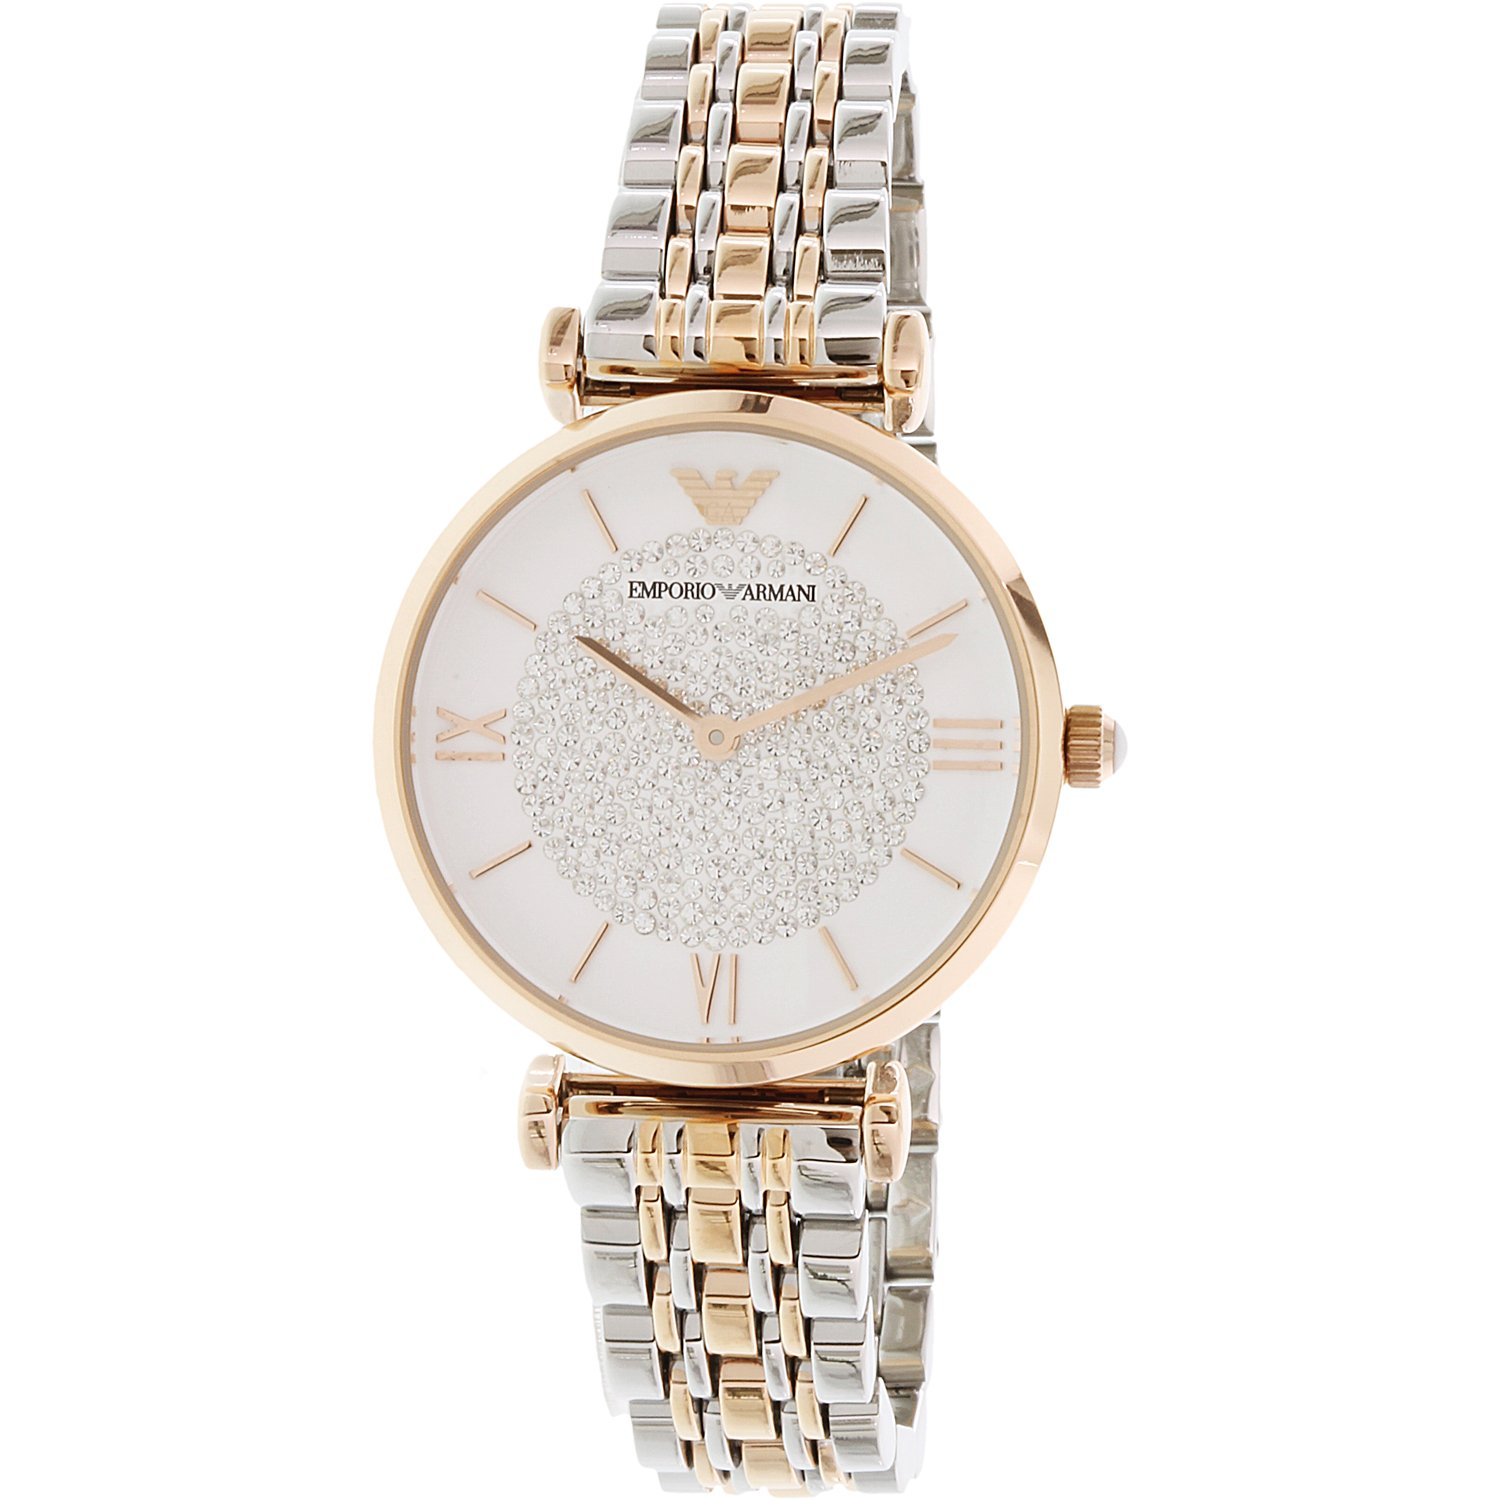 51da436a48fe Emporio Armani Women s Retro AR1926 Rose Gold Stainless-Steel Quartz  Fashion Watch